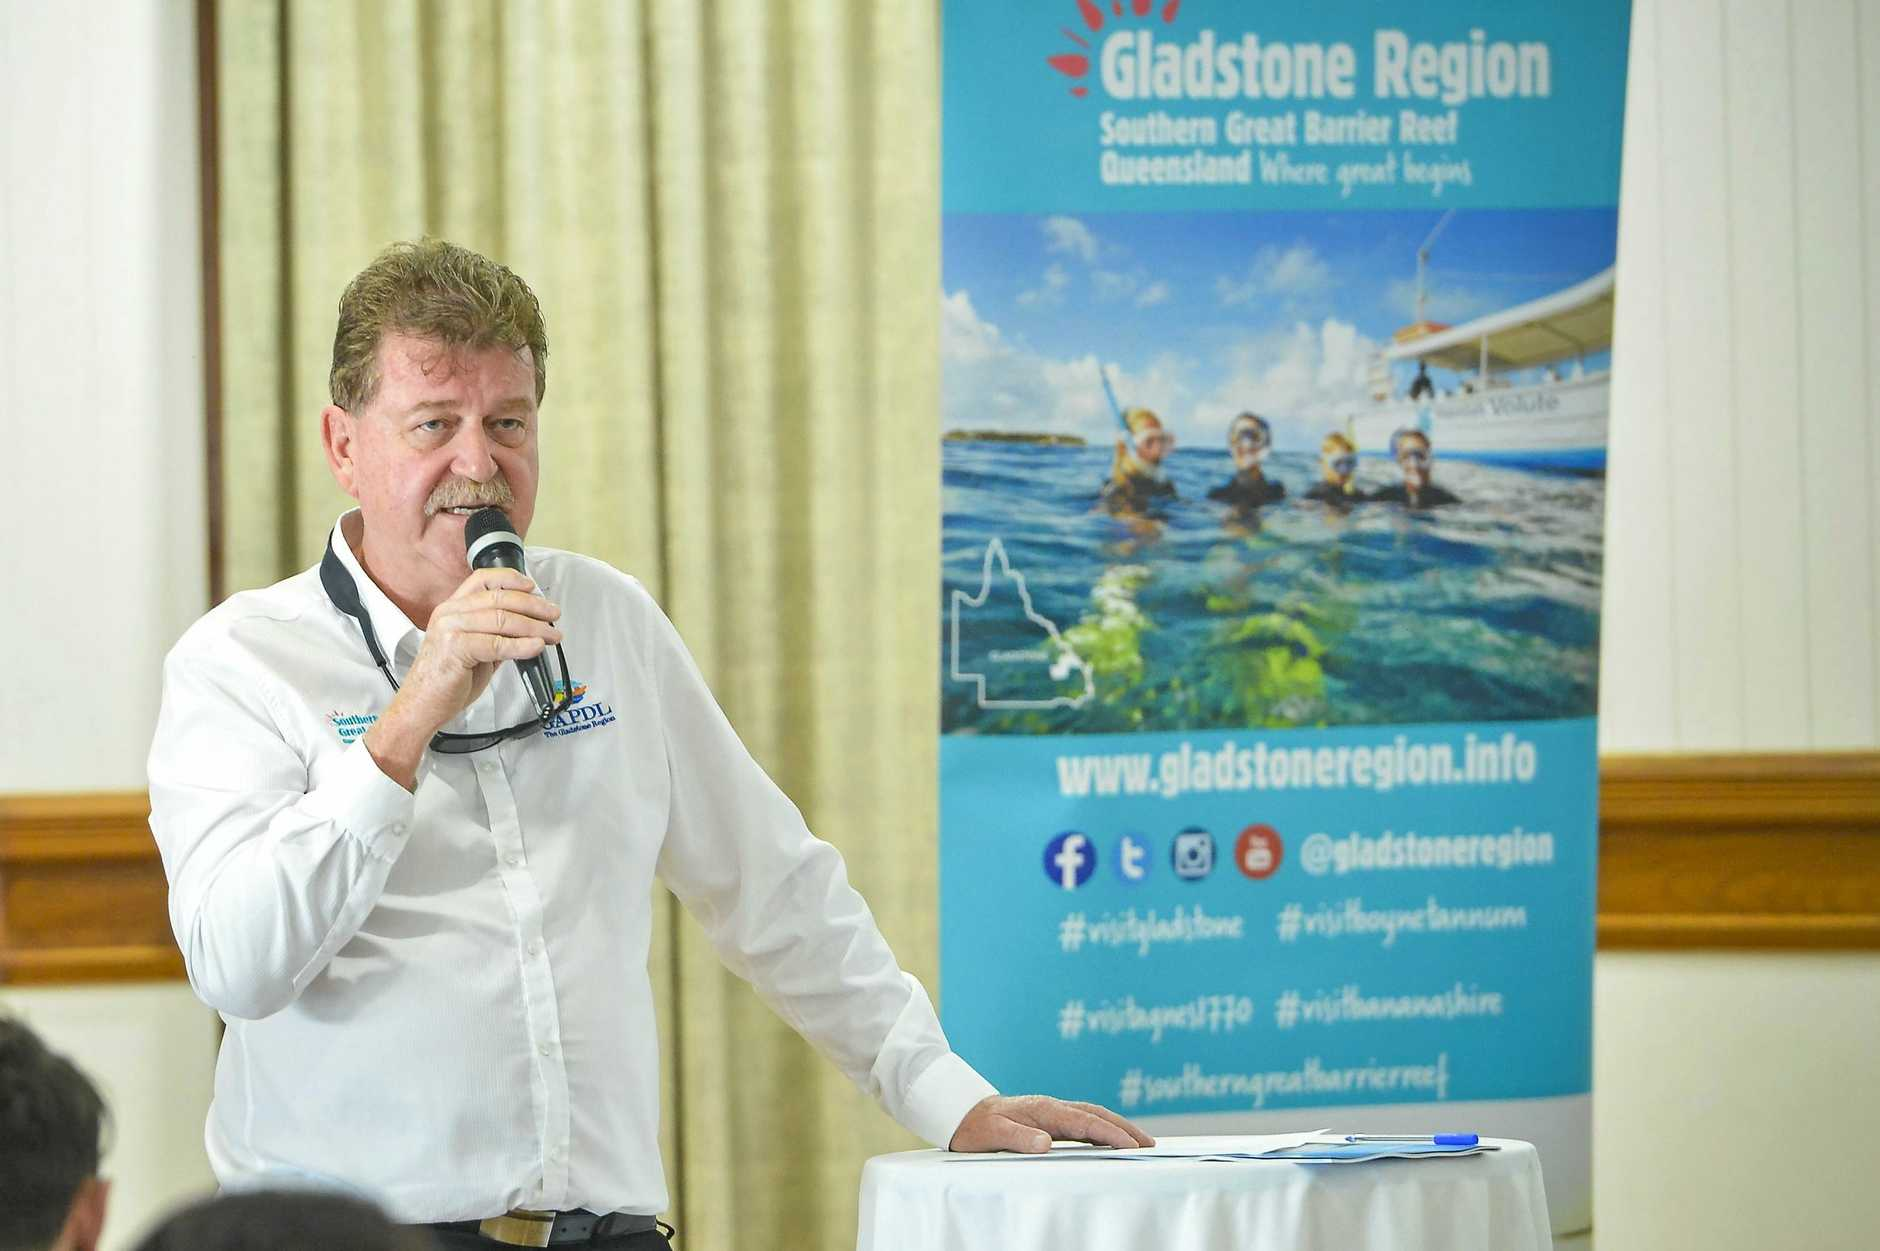 Darryl Branthwaite, CEO of GAPDL, speaks at the AGM on 26 October, 2017.